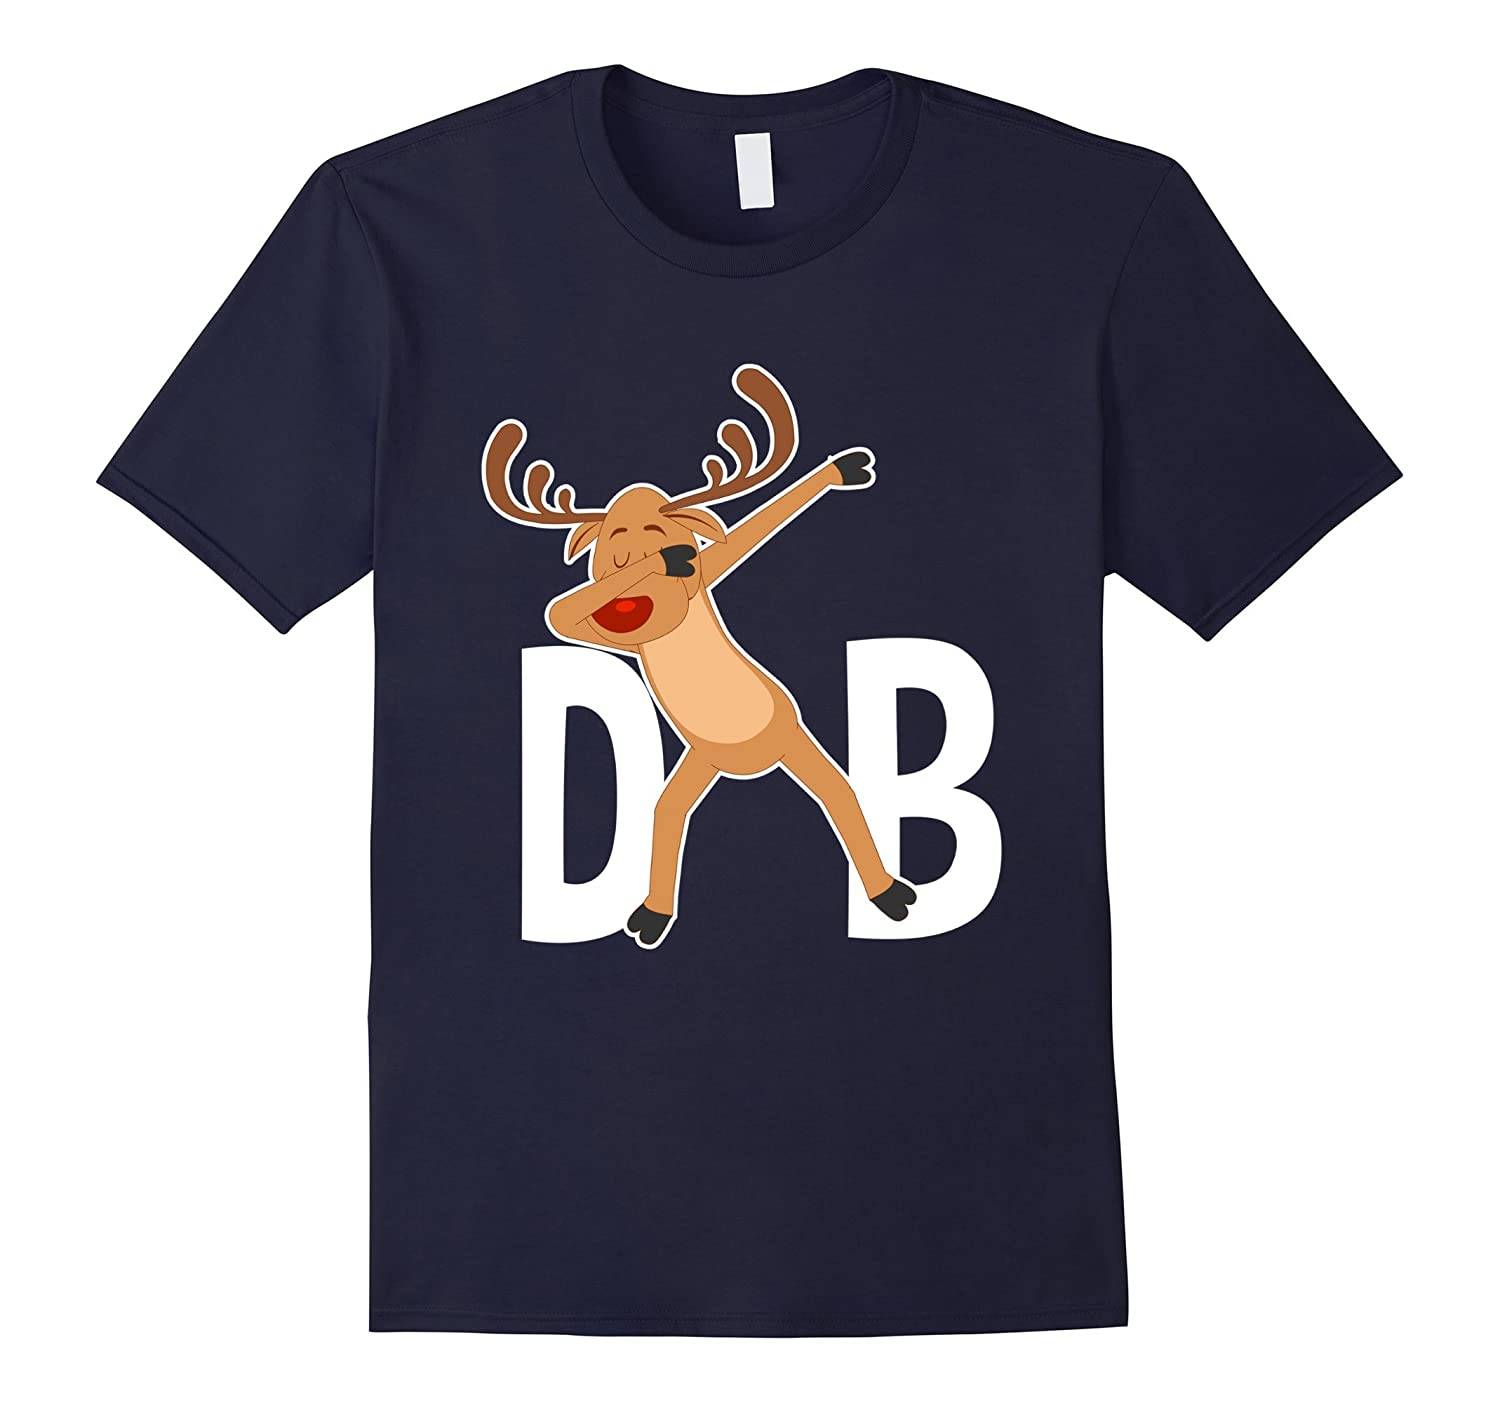 Reindeer Dabbing Funny & Cute Christmas Holiday Gift T-Shirt